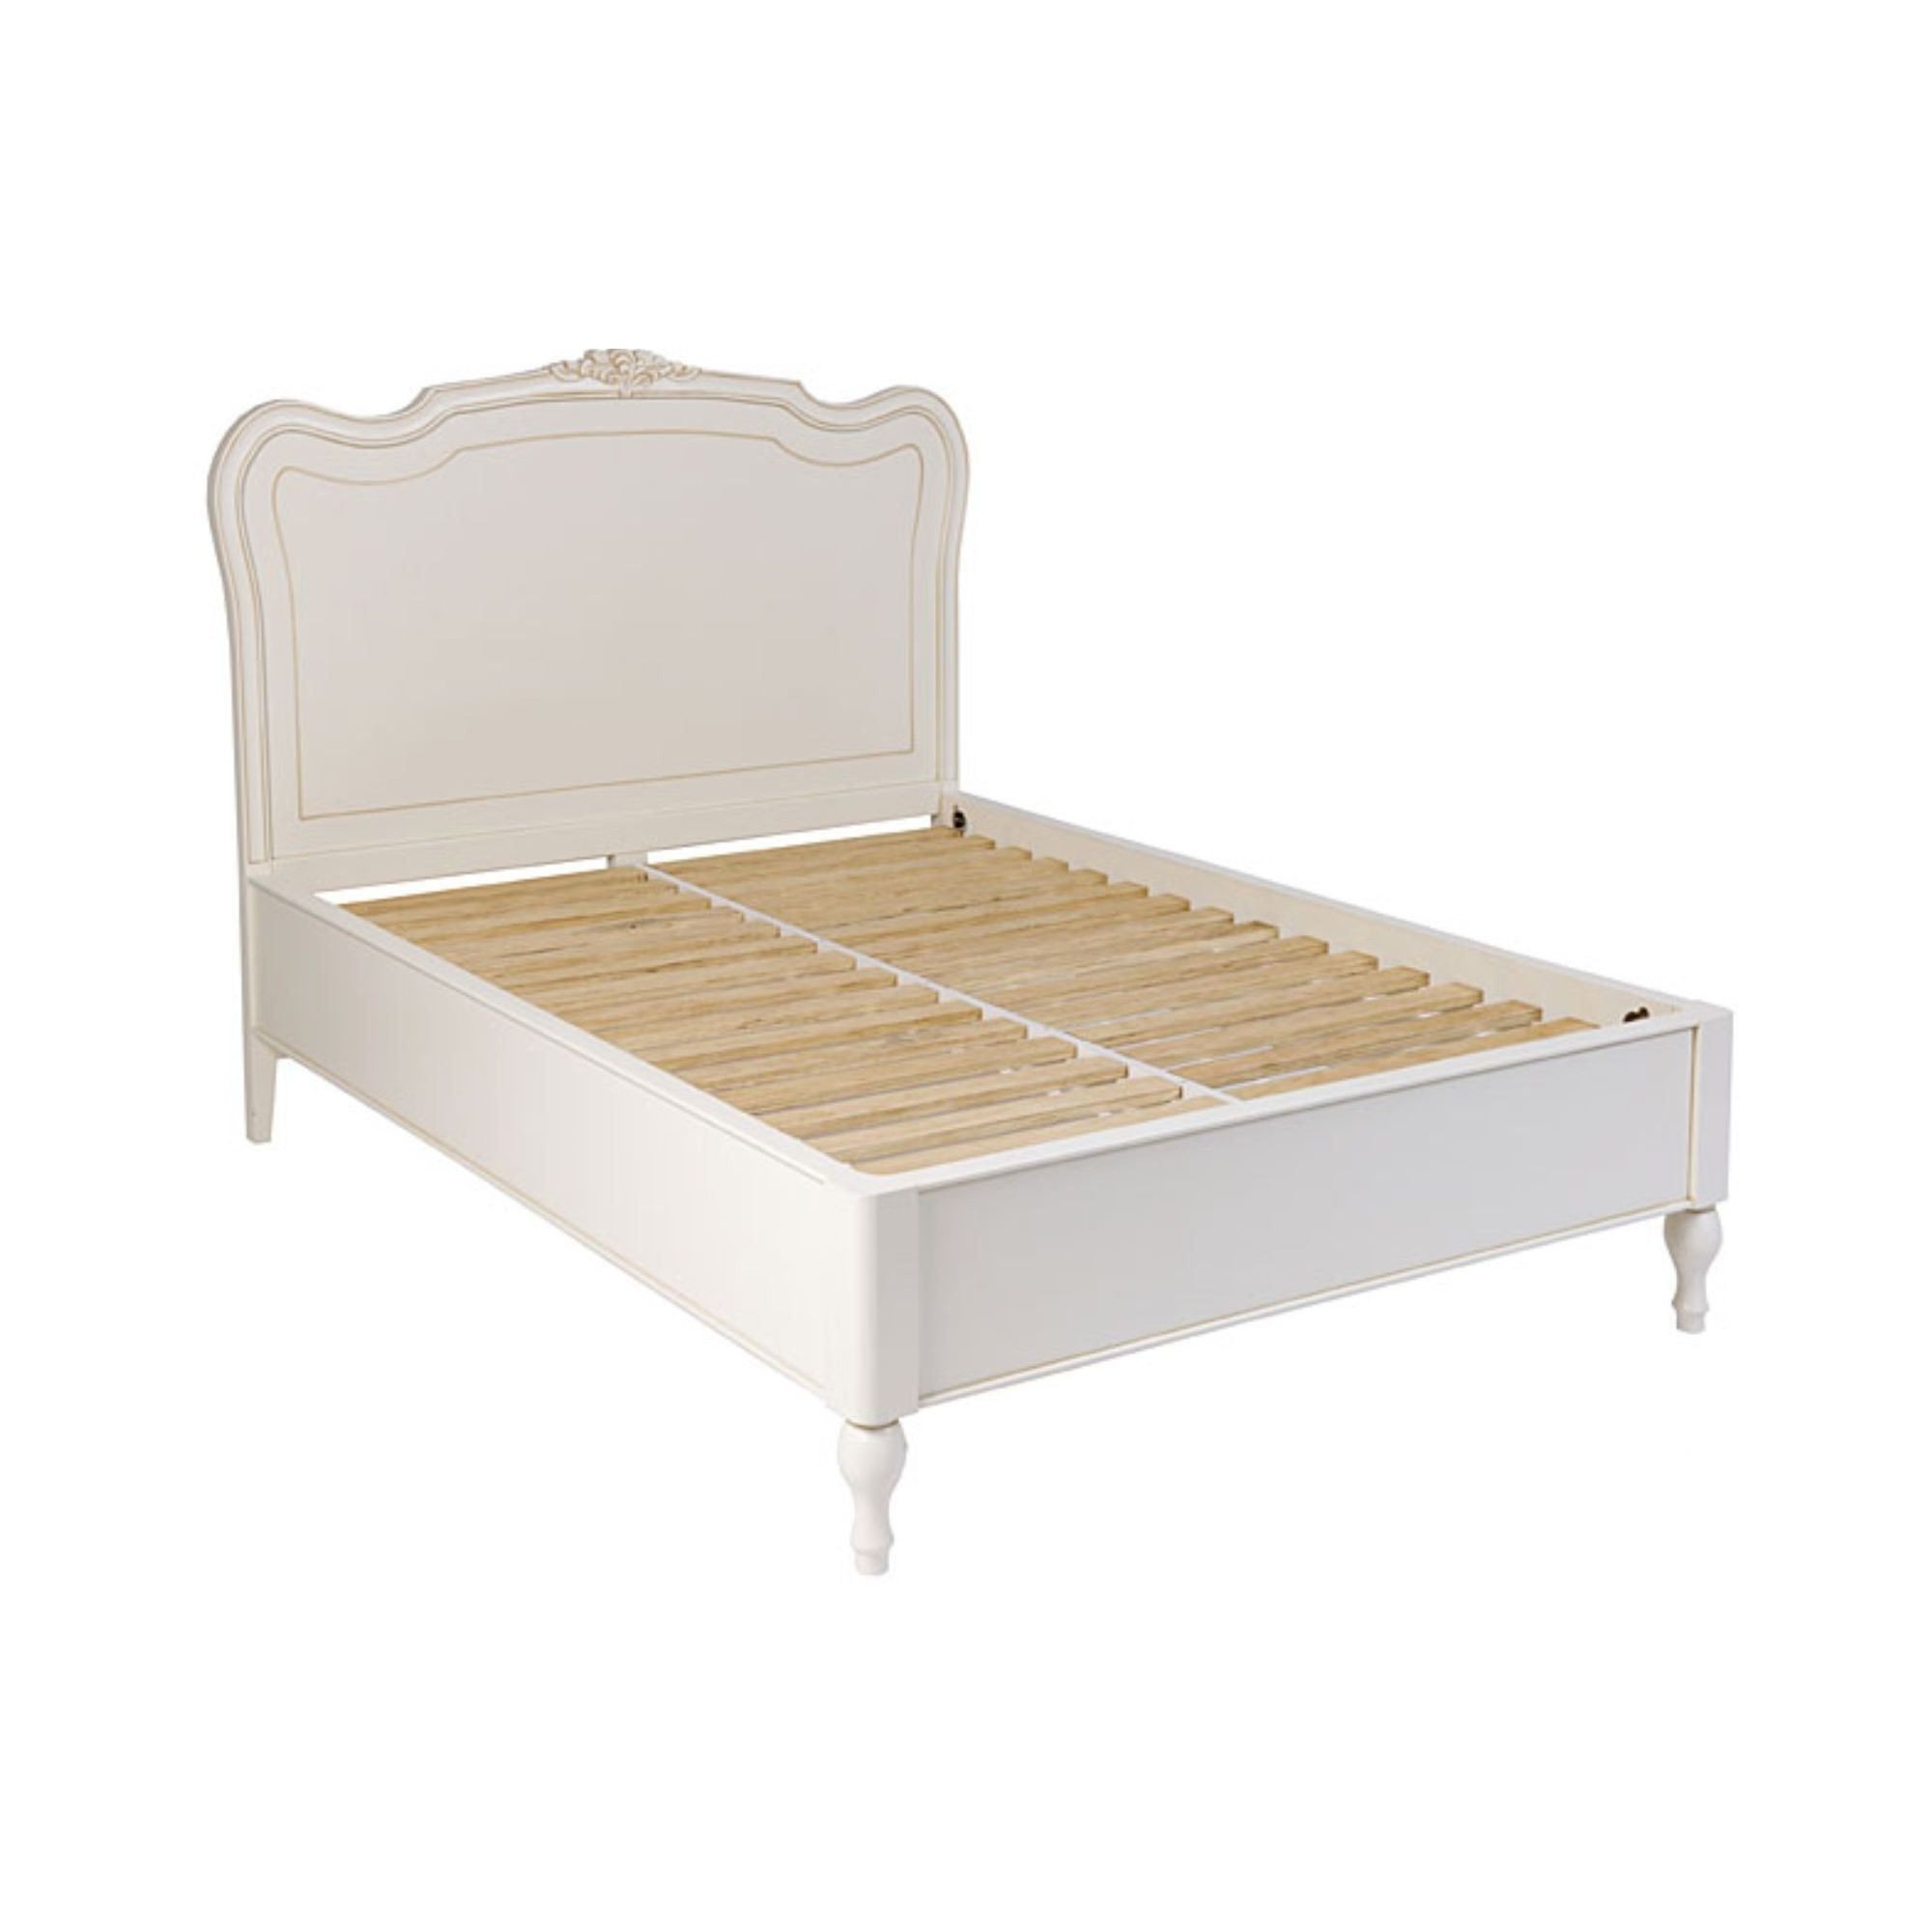 Kelburn Furniture Laurent Panel Bed - King at Tesco Direct